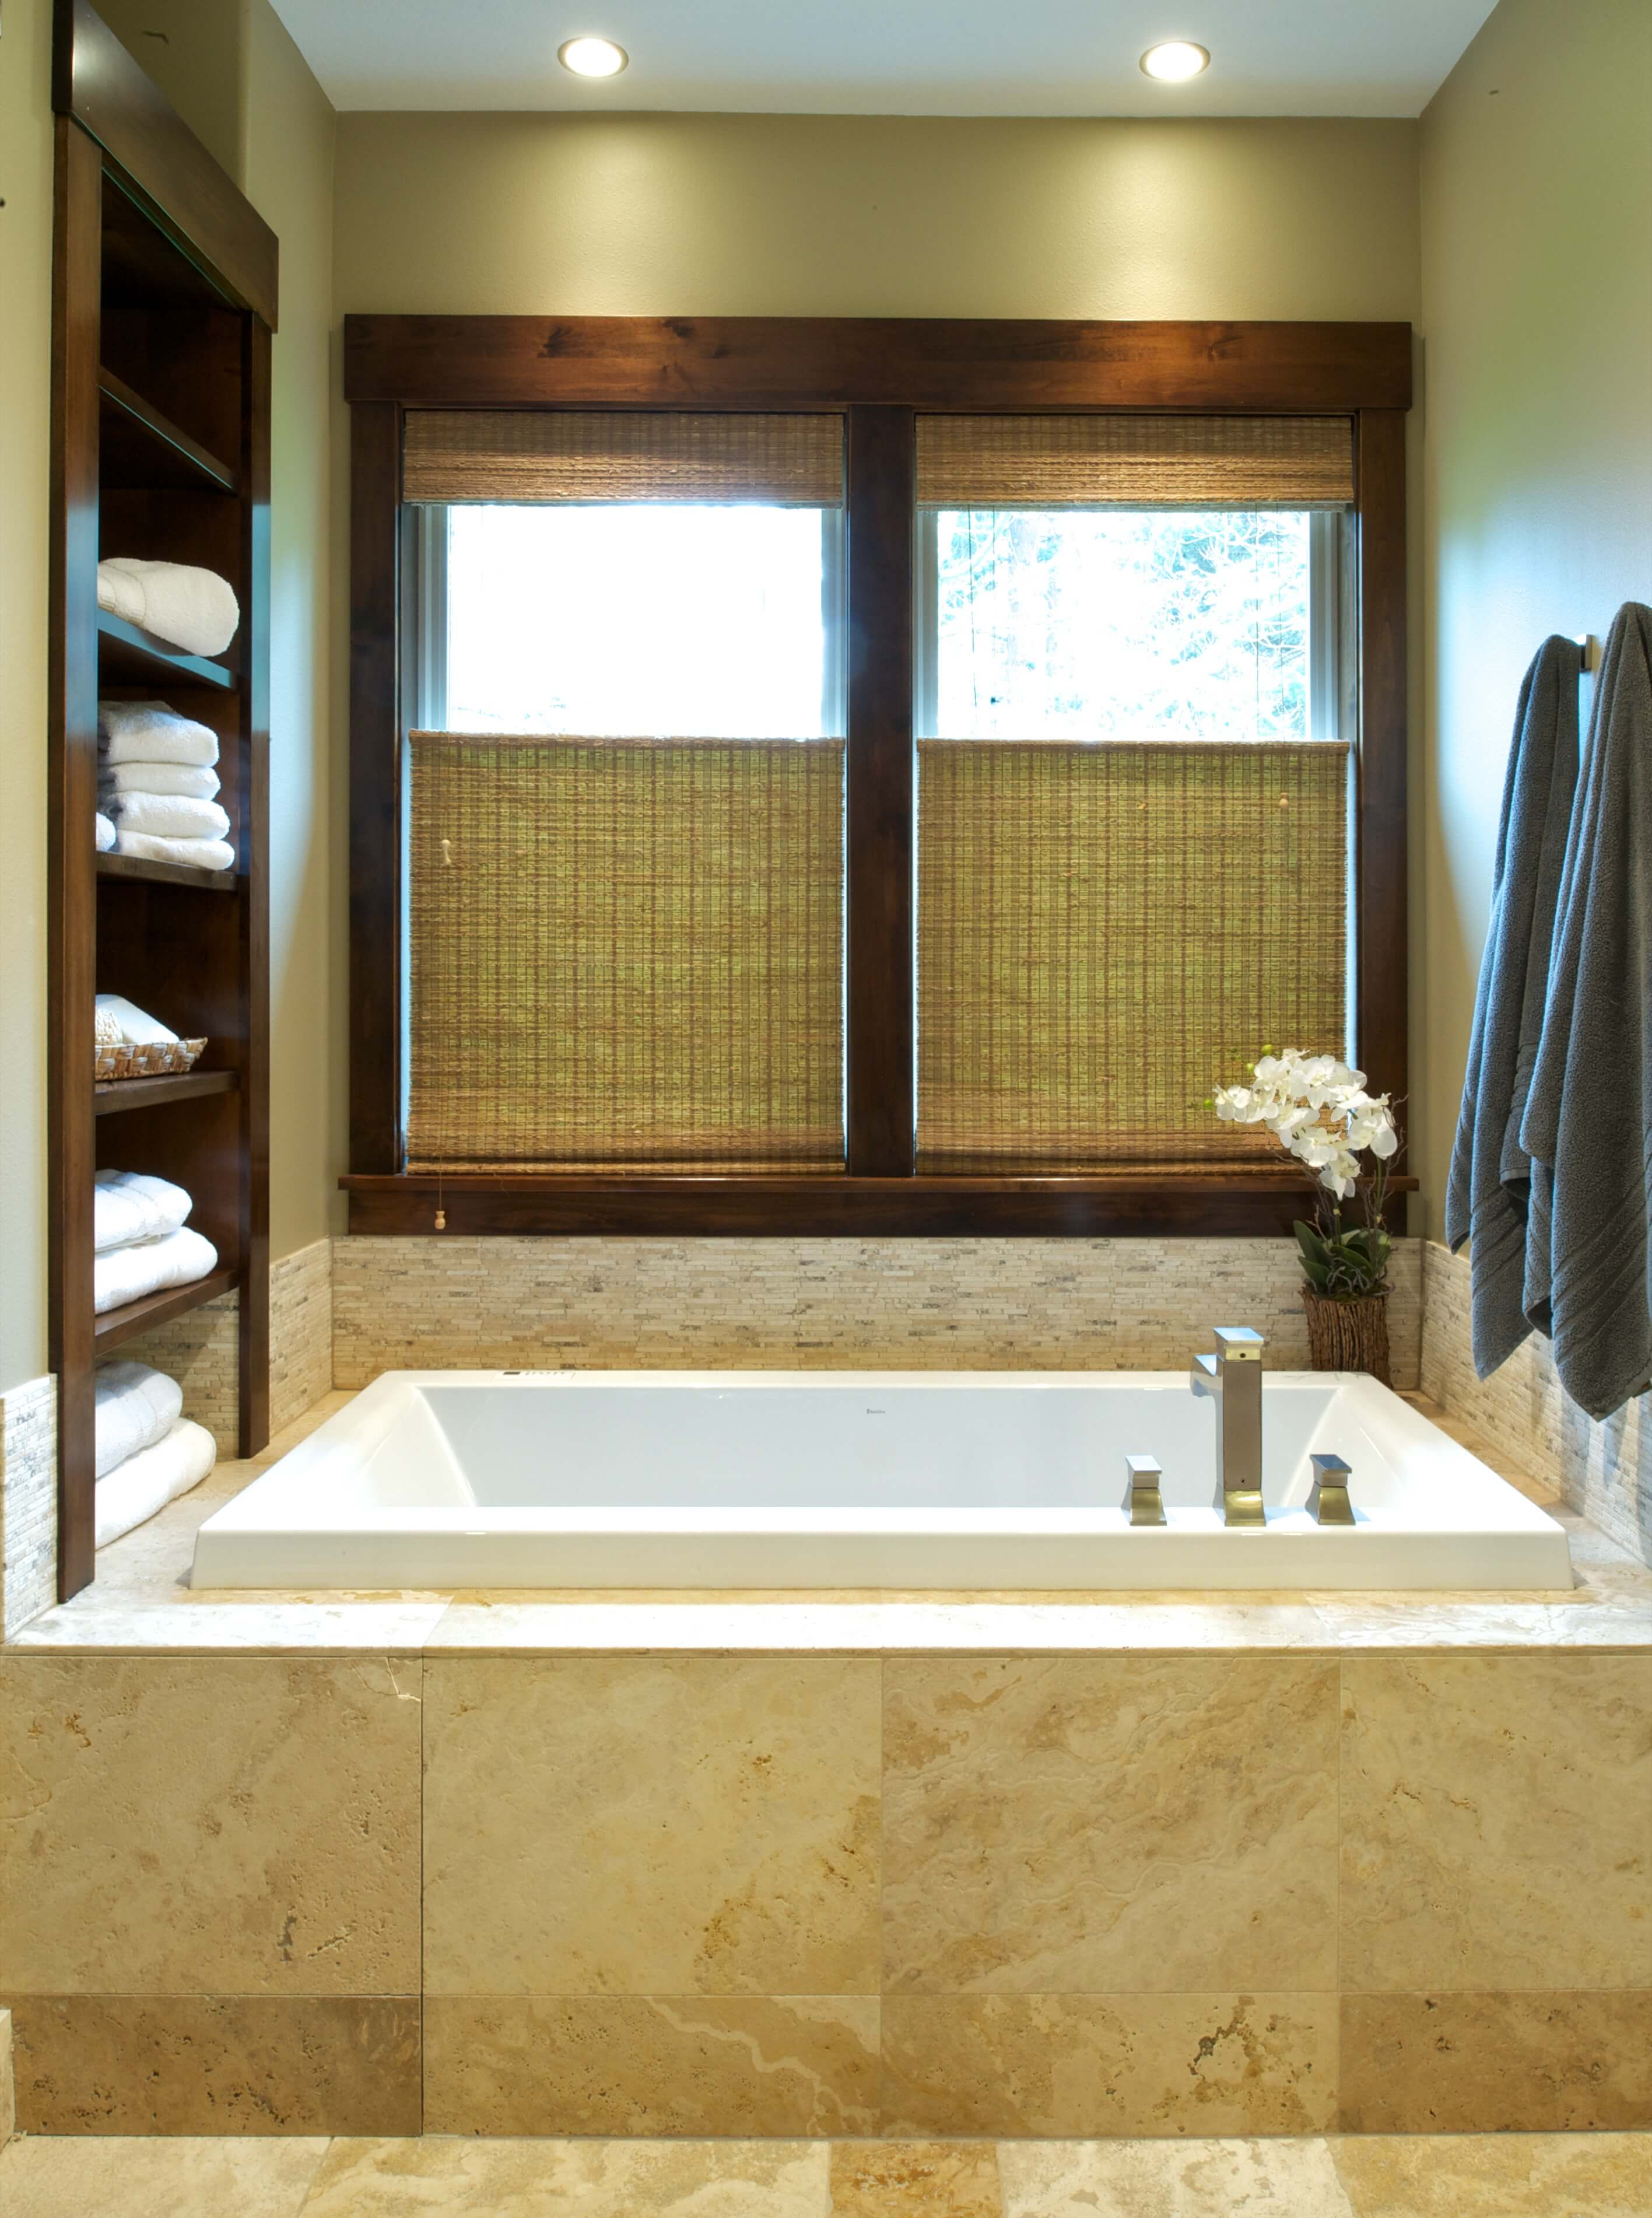 This close up view of the bathtub highlights the unique angular faucet design and mini-tile backsplash beneath large windows with rich wood molding.